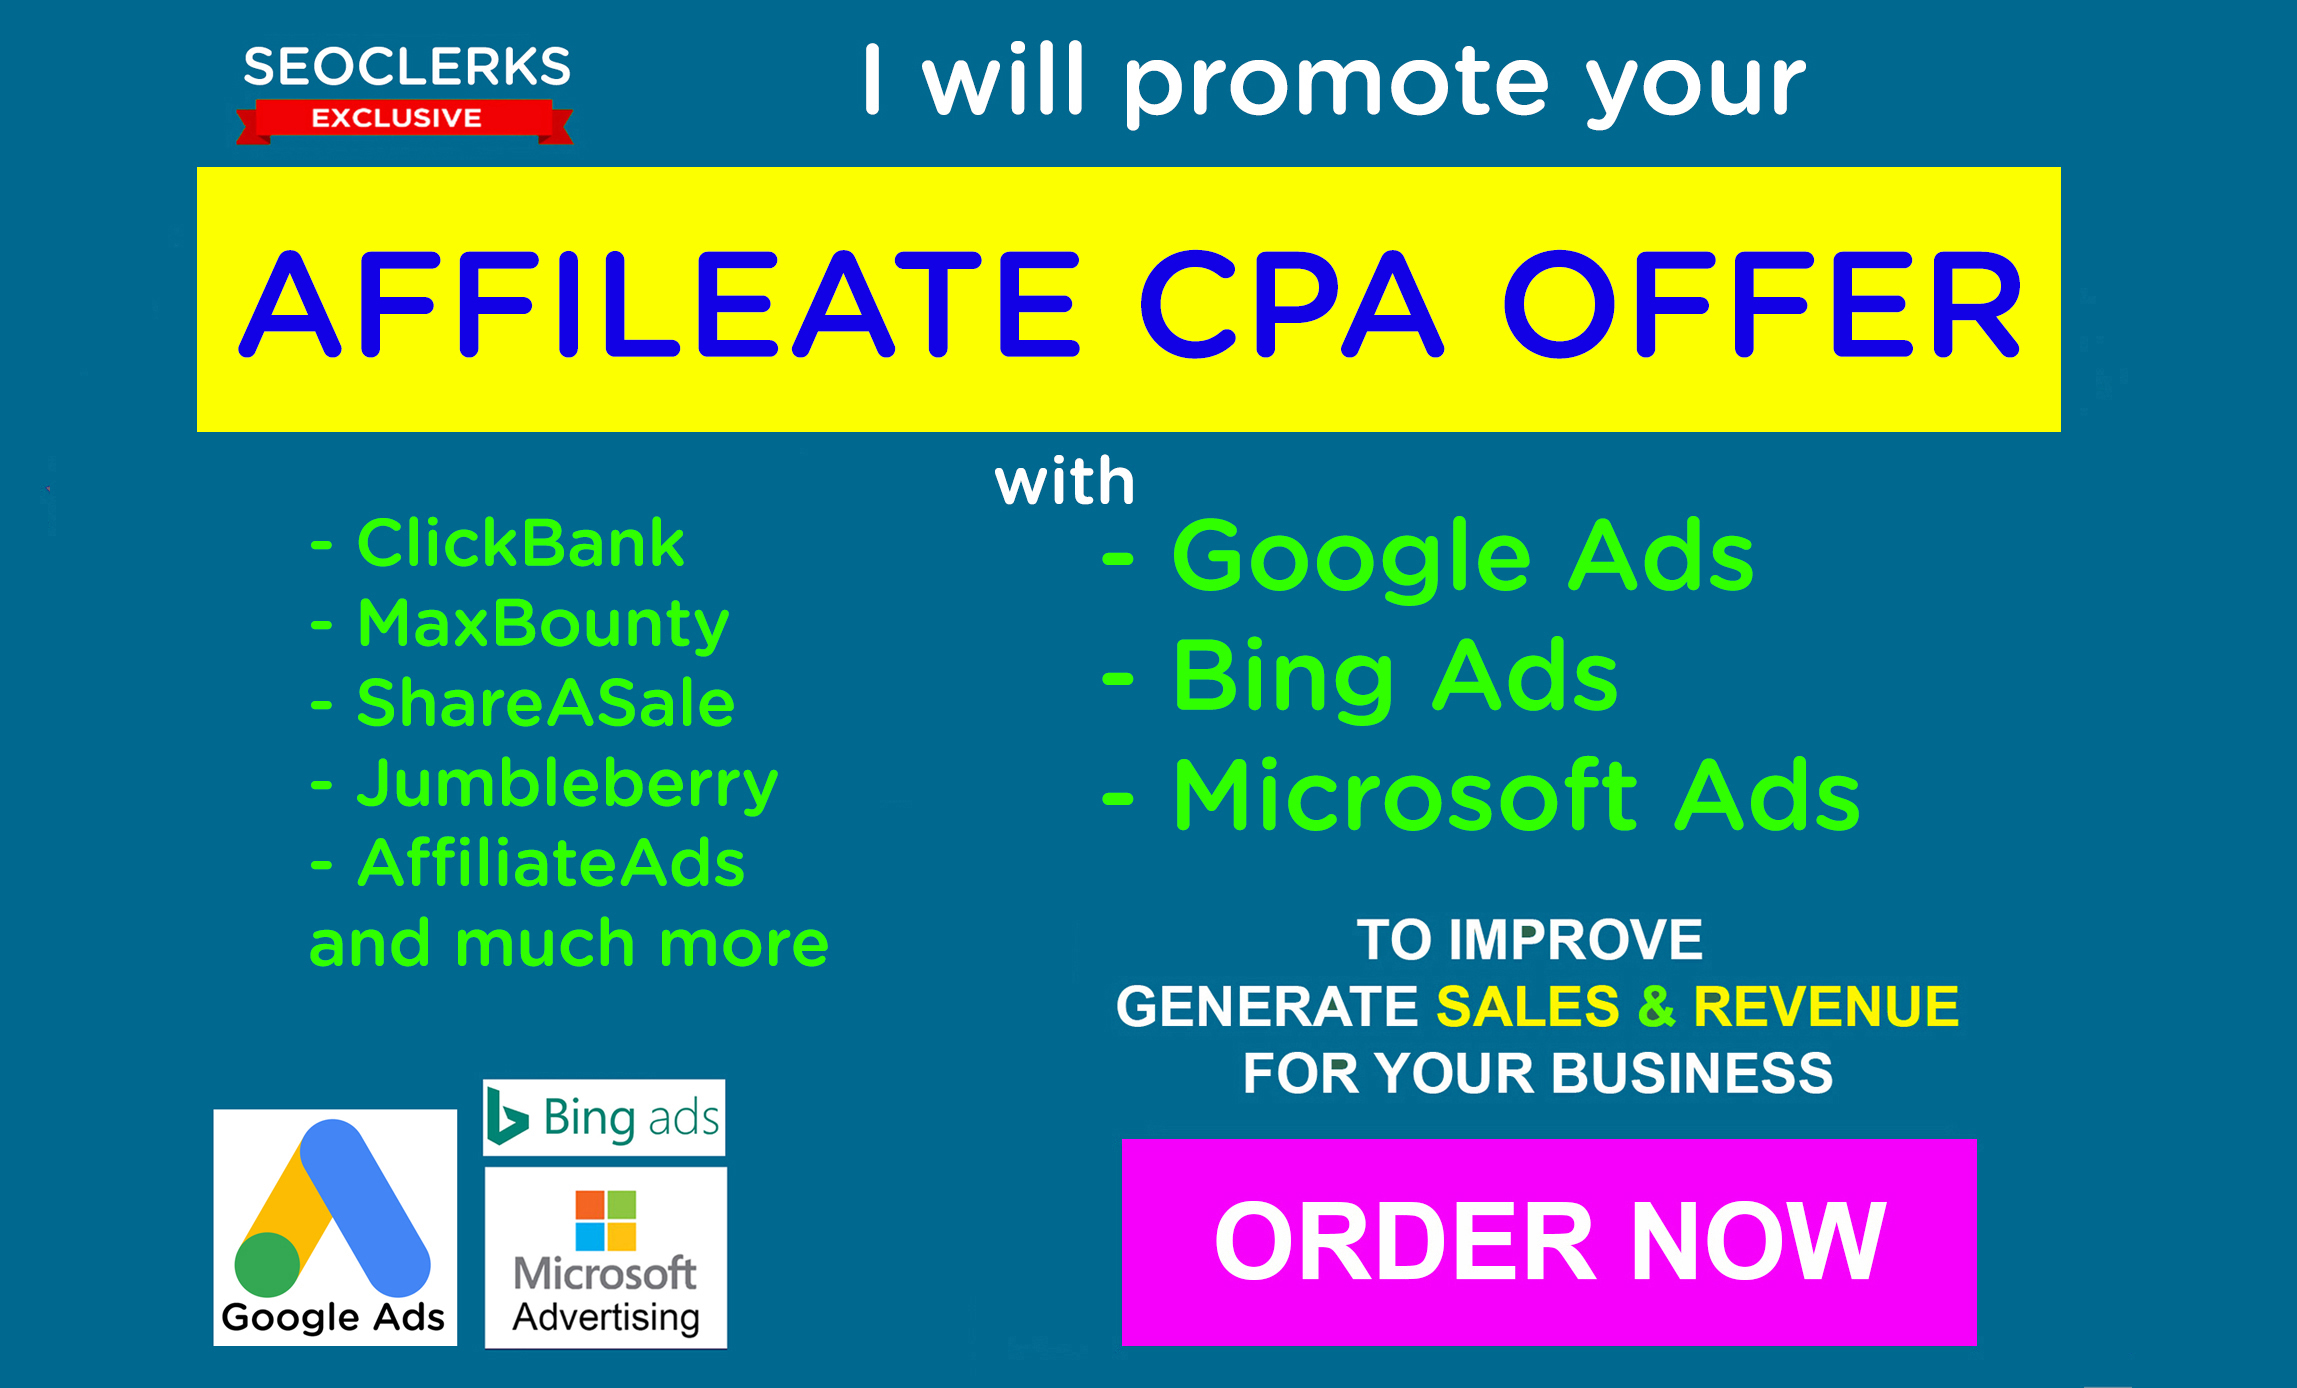 I will promote affiliate CPA offer with google ads or bing ads